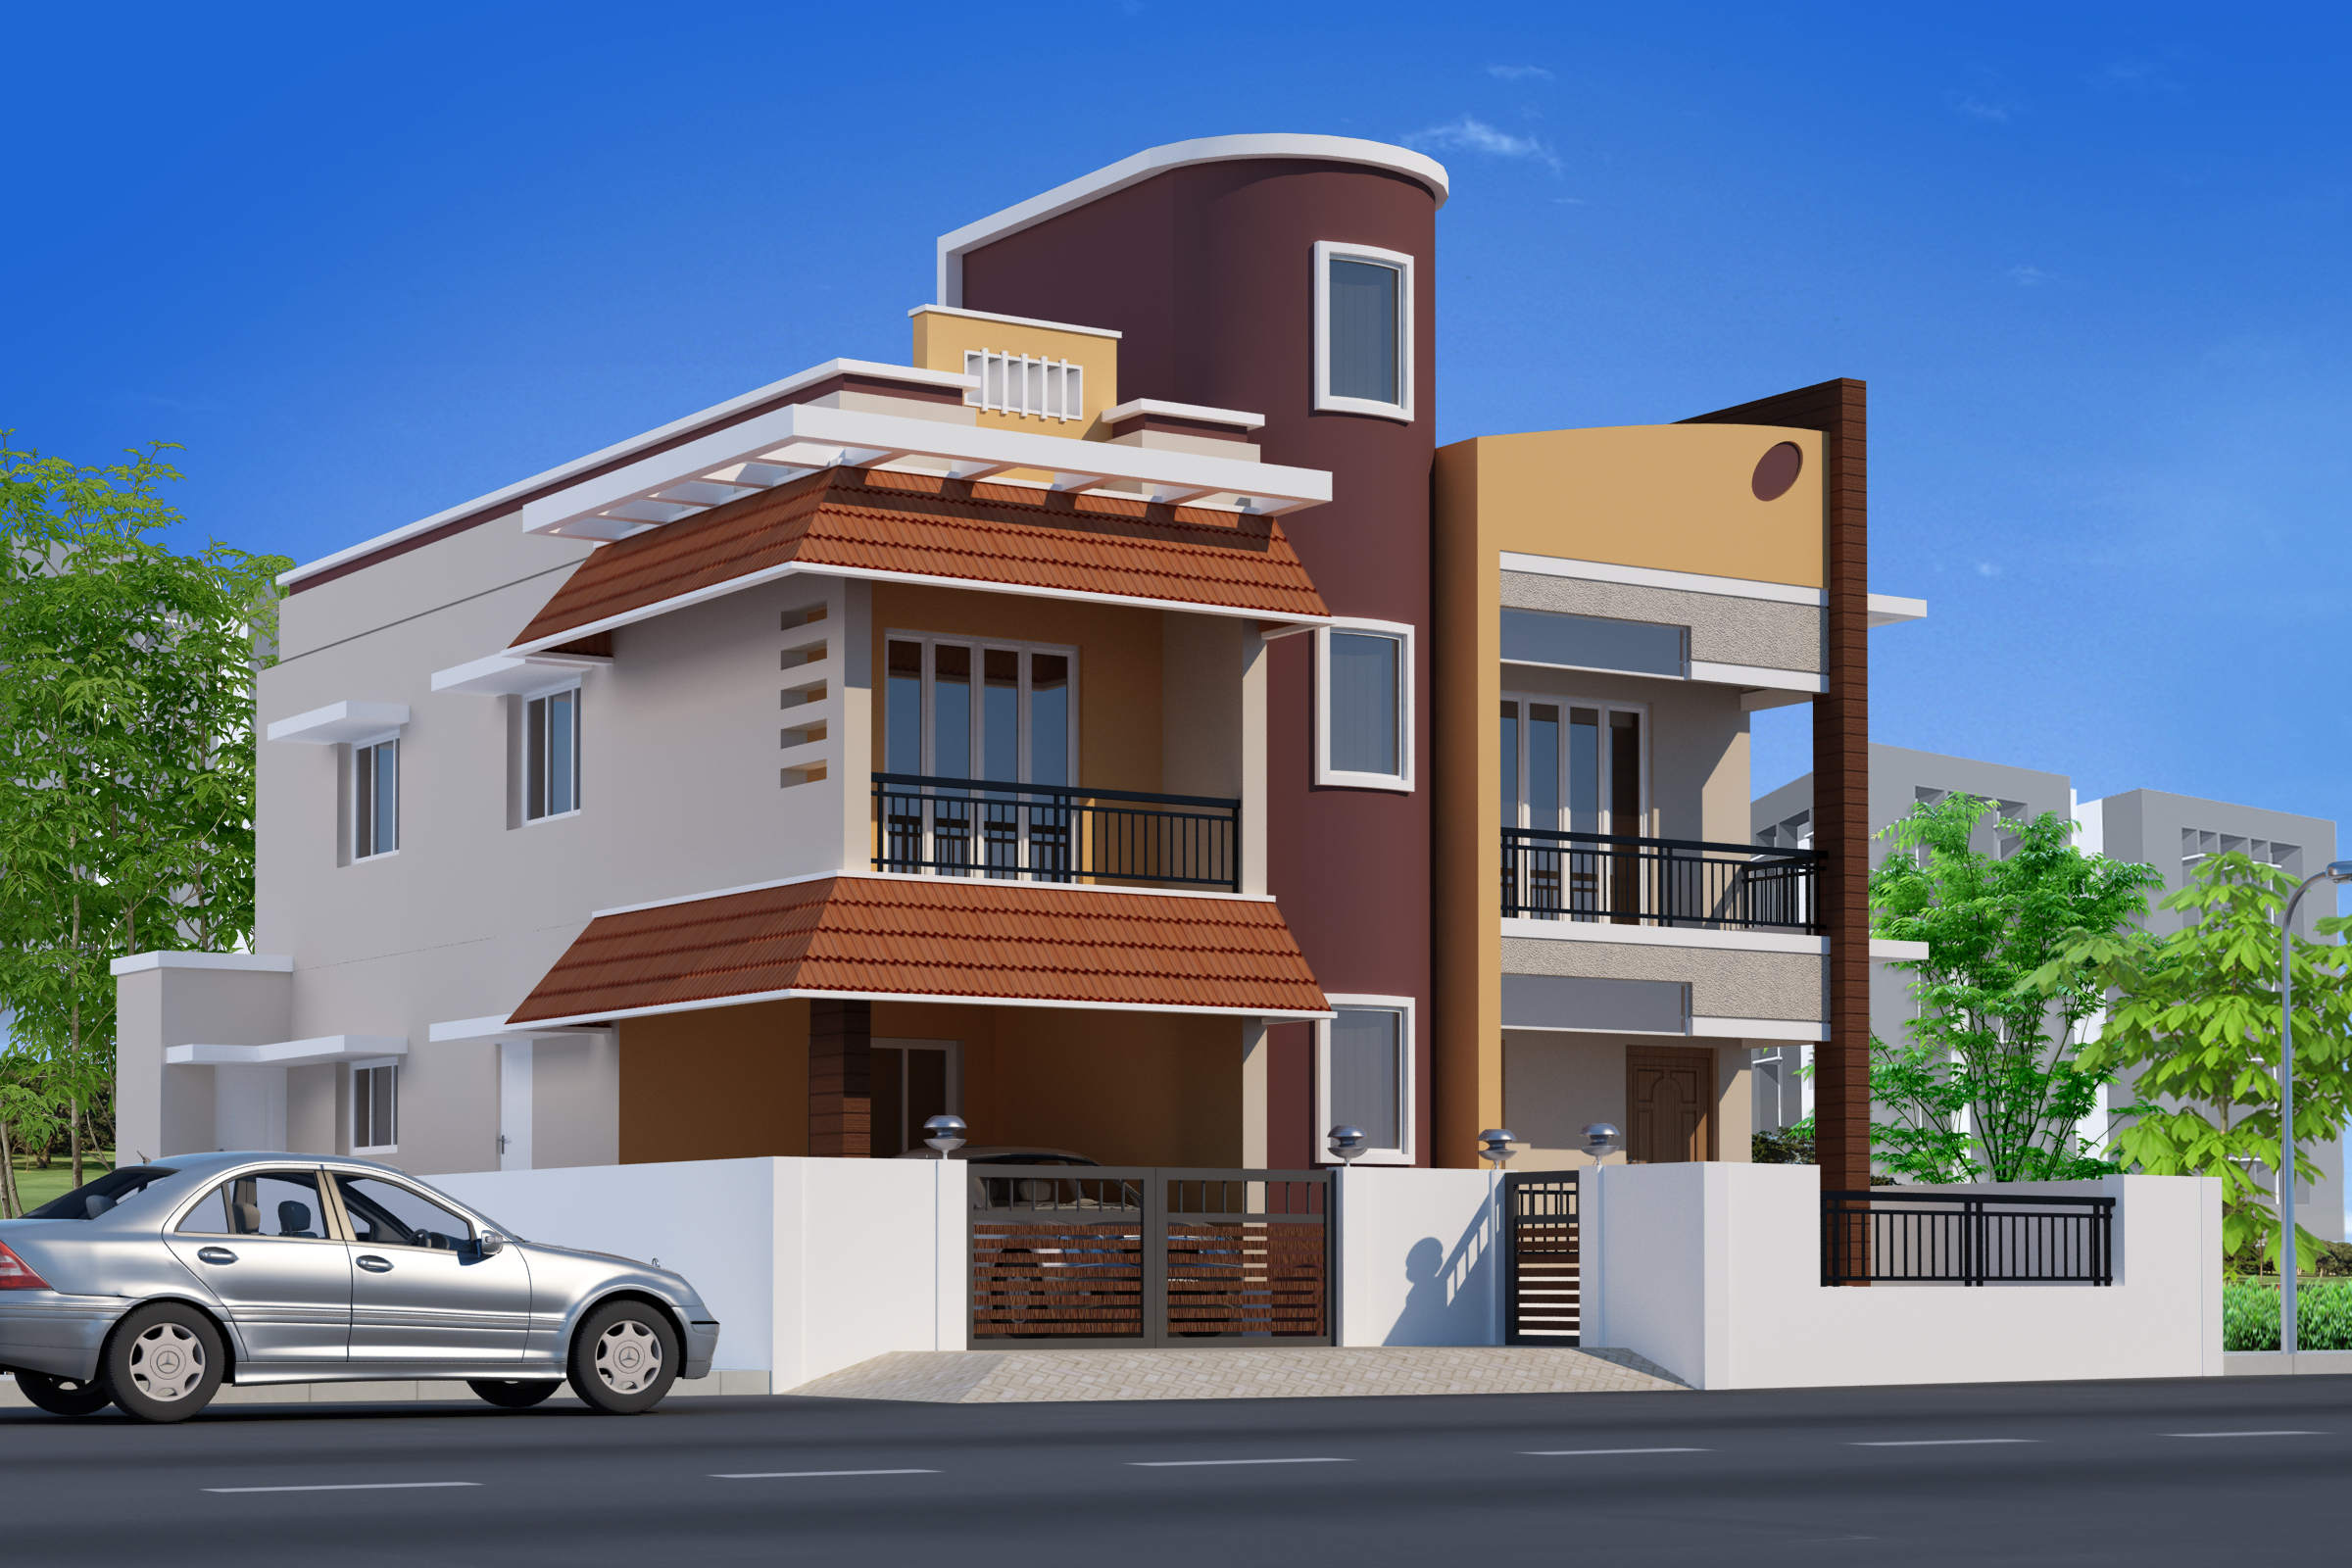 Venkat homes best builders in chennai reputed builders for Individual house models in chennai